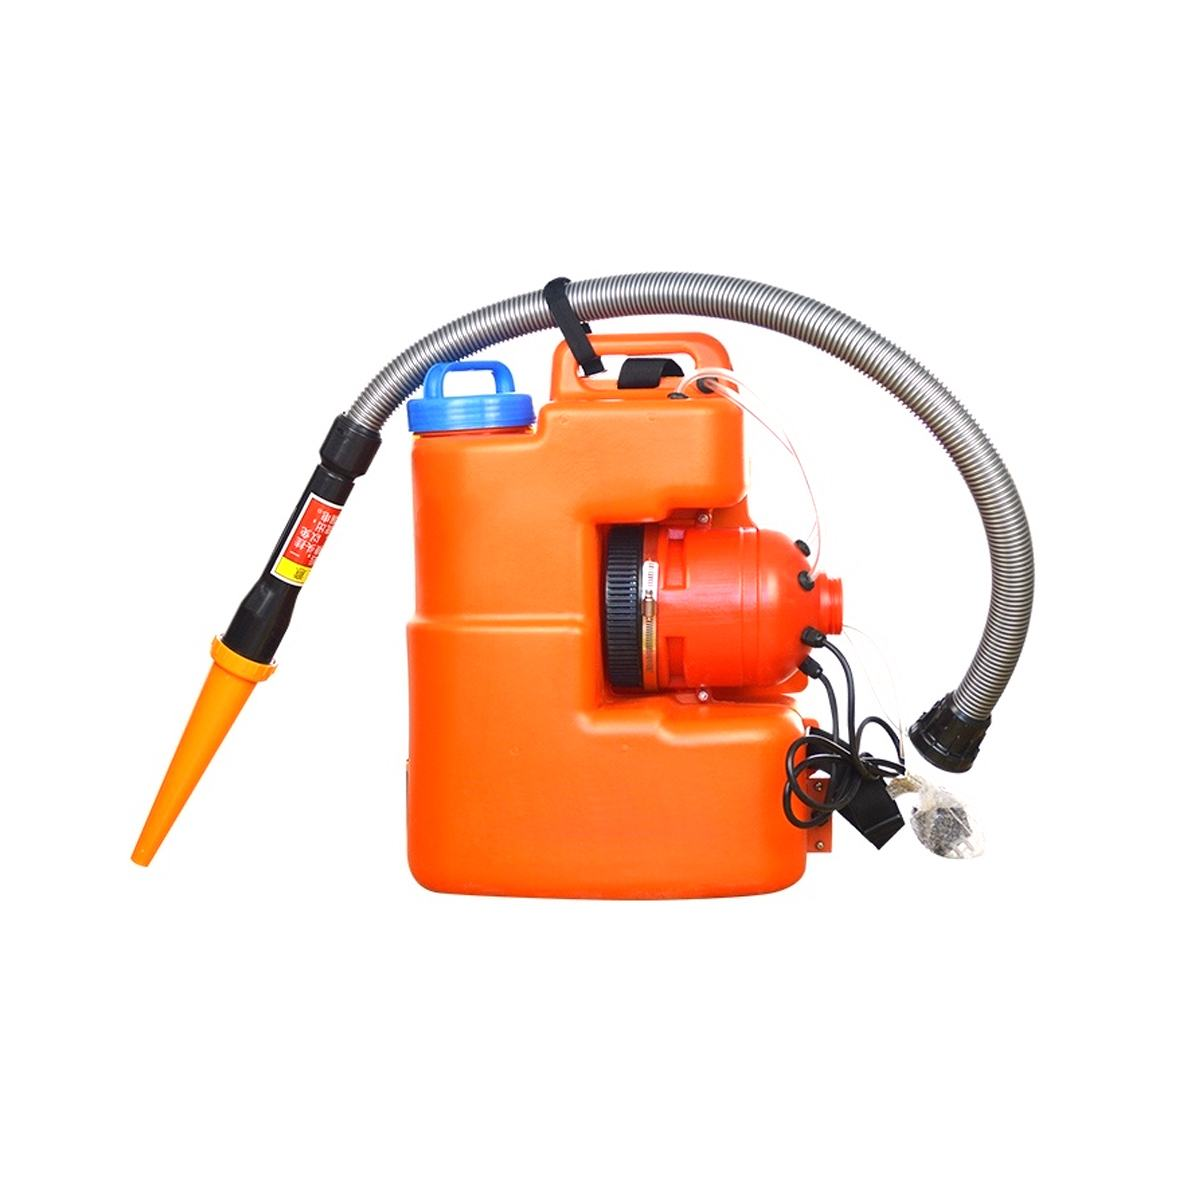 Industrial 220V 20L Electric Fogger ULV Sprayer Mosquito Killer For Farming Office